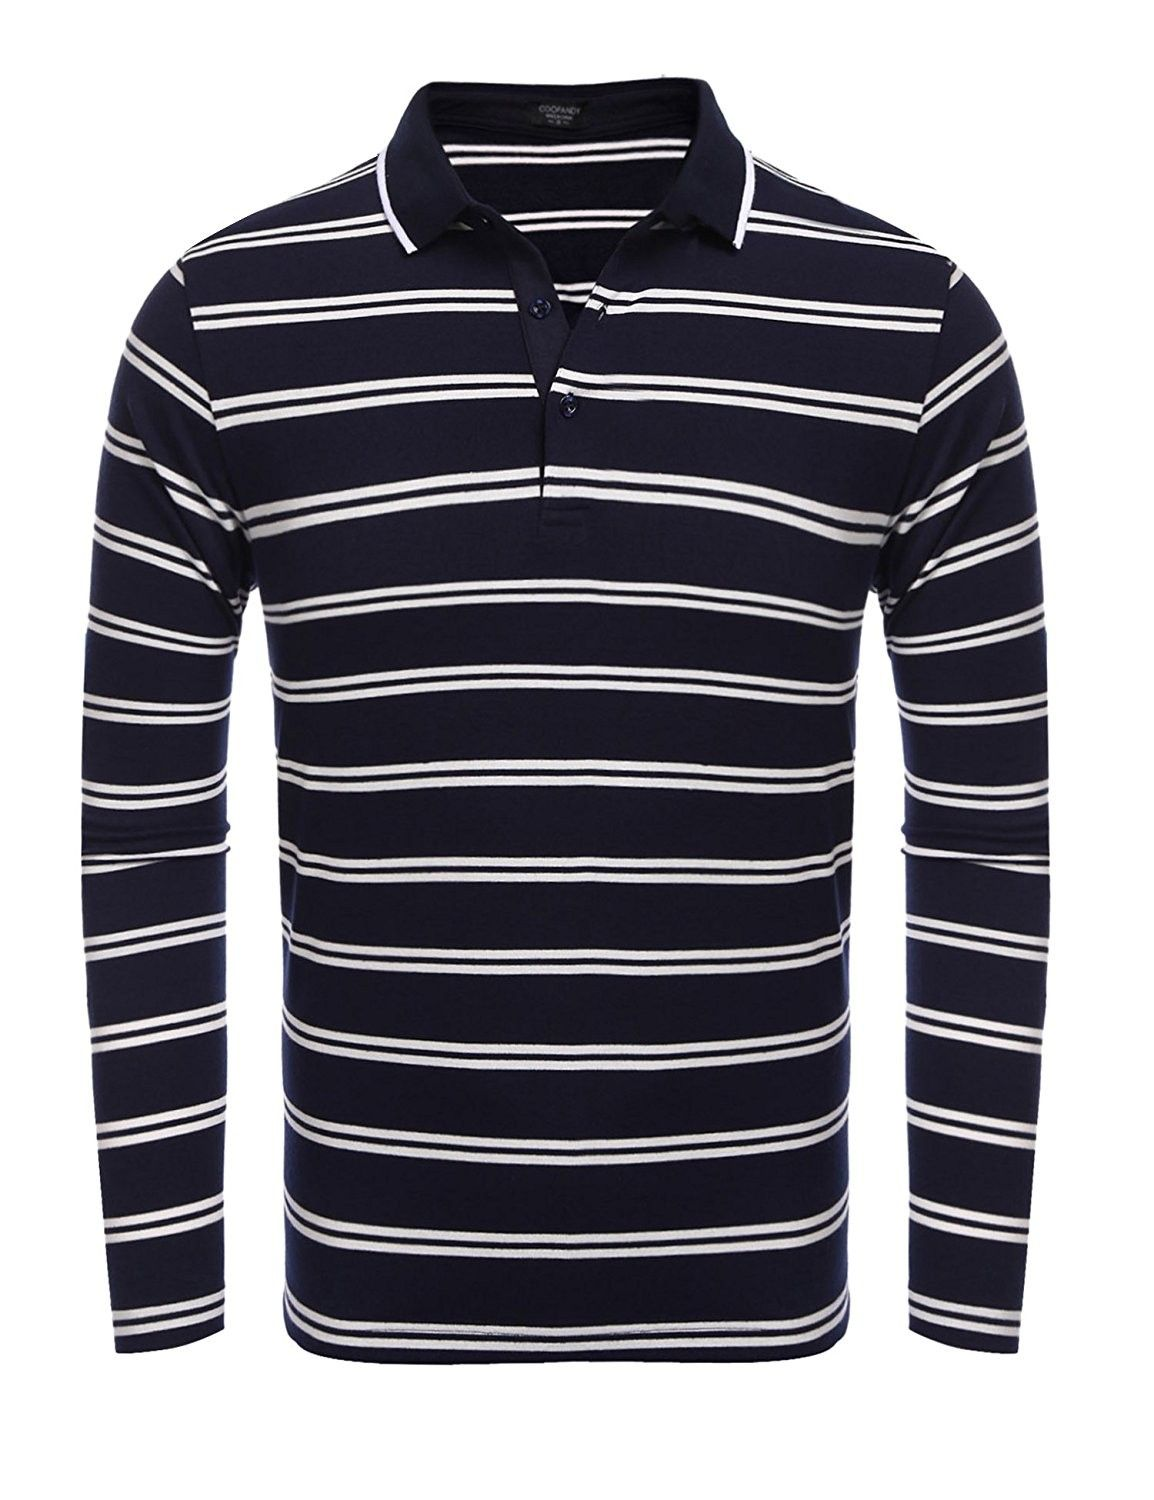 Mens Long Sleeve Polo Shirt Casual Striped Classic Fit Cotton T